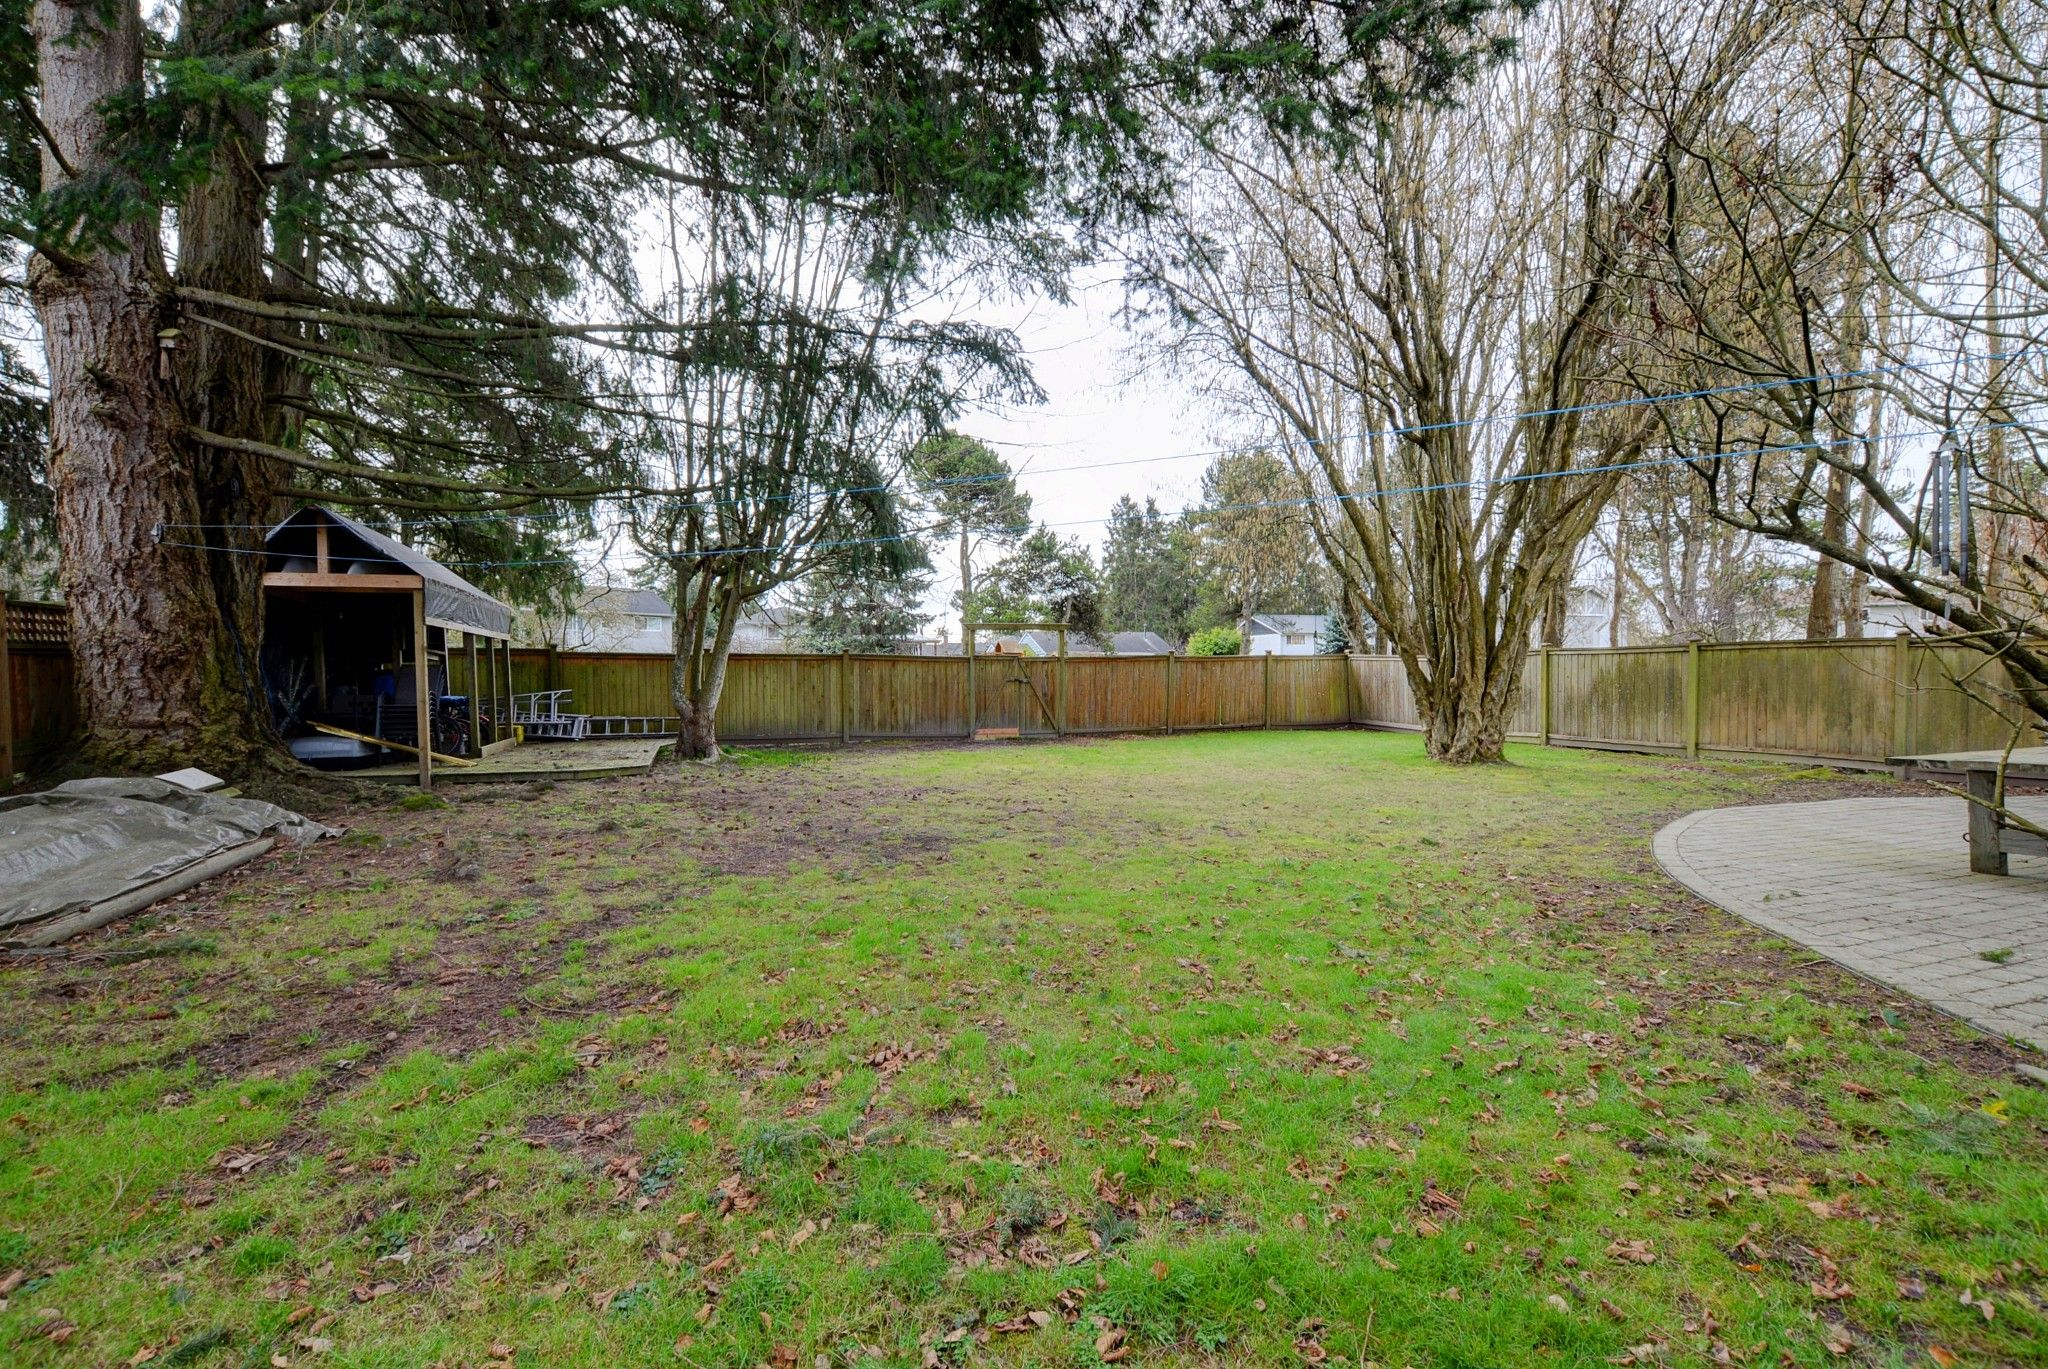 Photo 21: Photos: 5166 44 Avenue in Delta: Ladner Elementary House for sale (Ladner)  : MLS®# R2239309